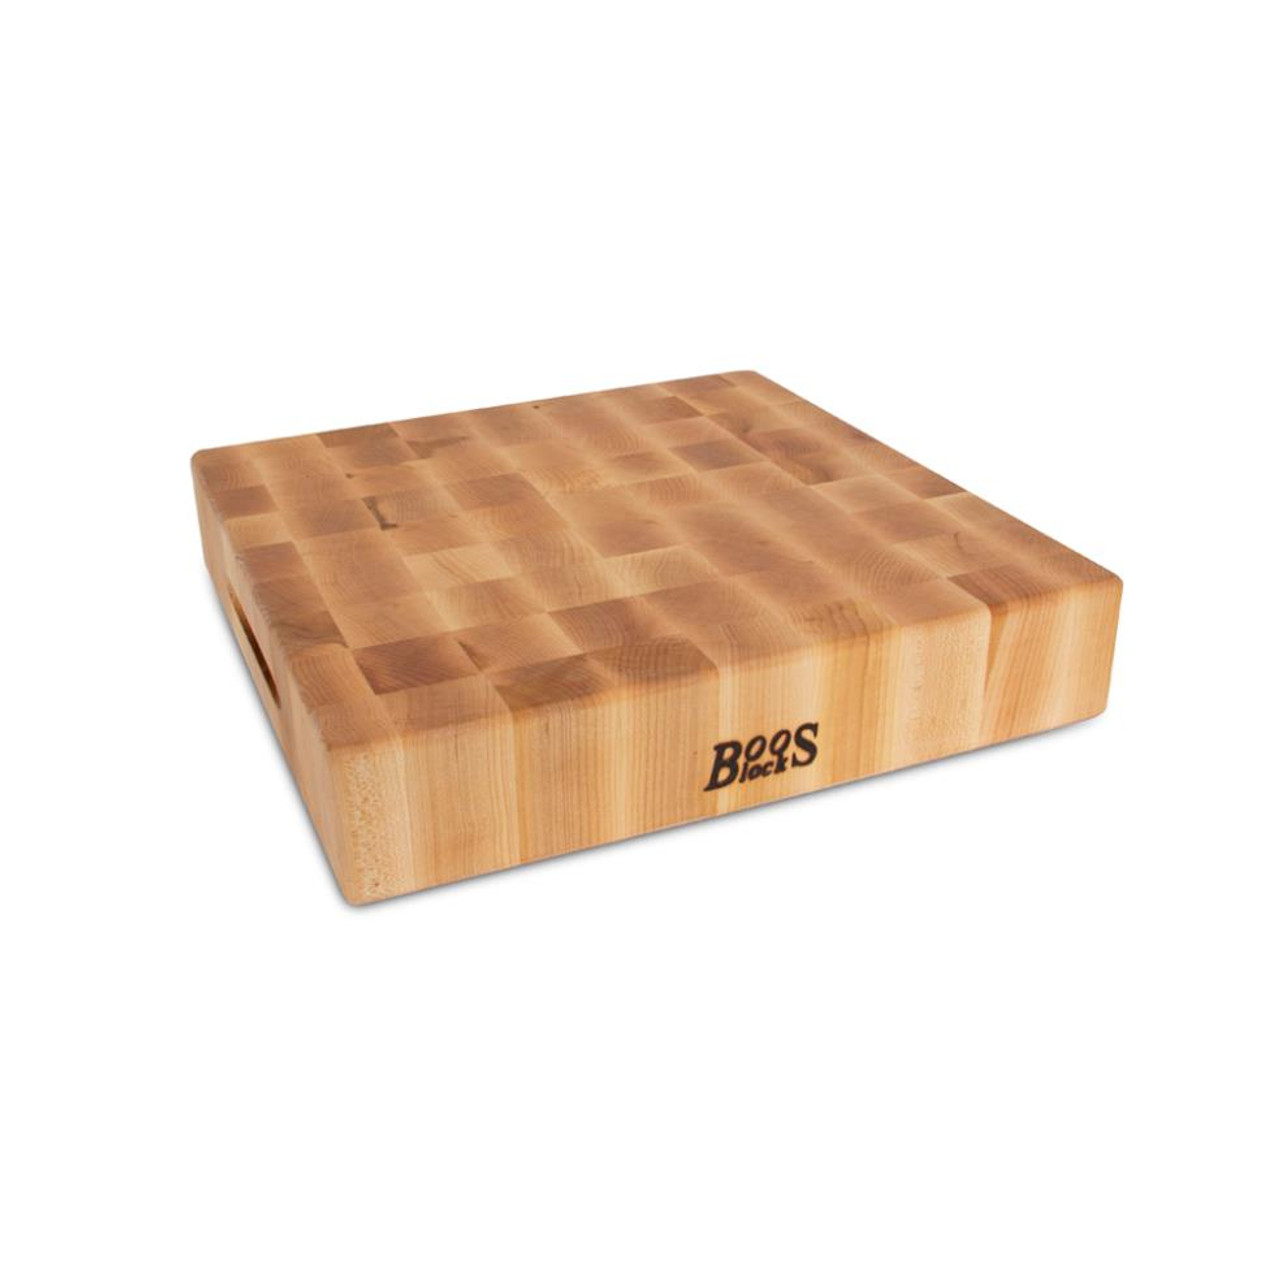 JOHN BOOS MAPLE BOARD END GRAIN w GRIPS - REVERSIBLE 15X15X3